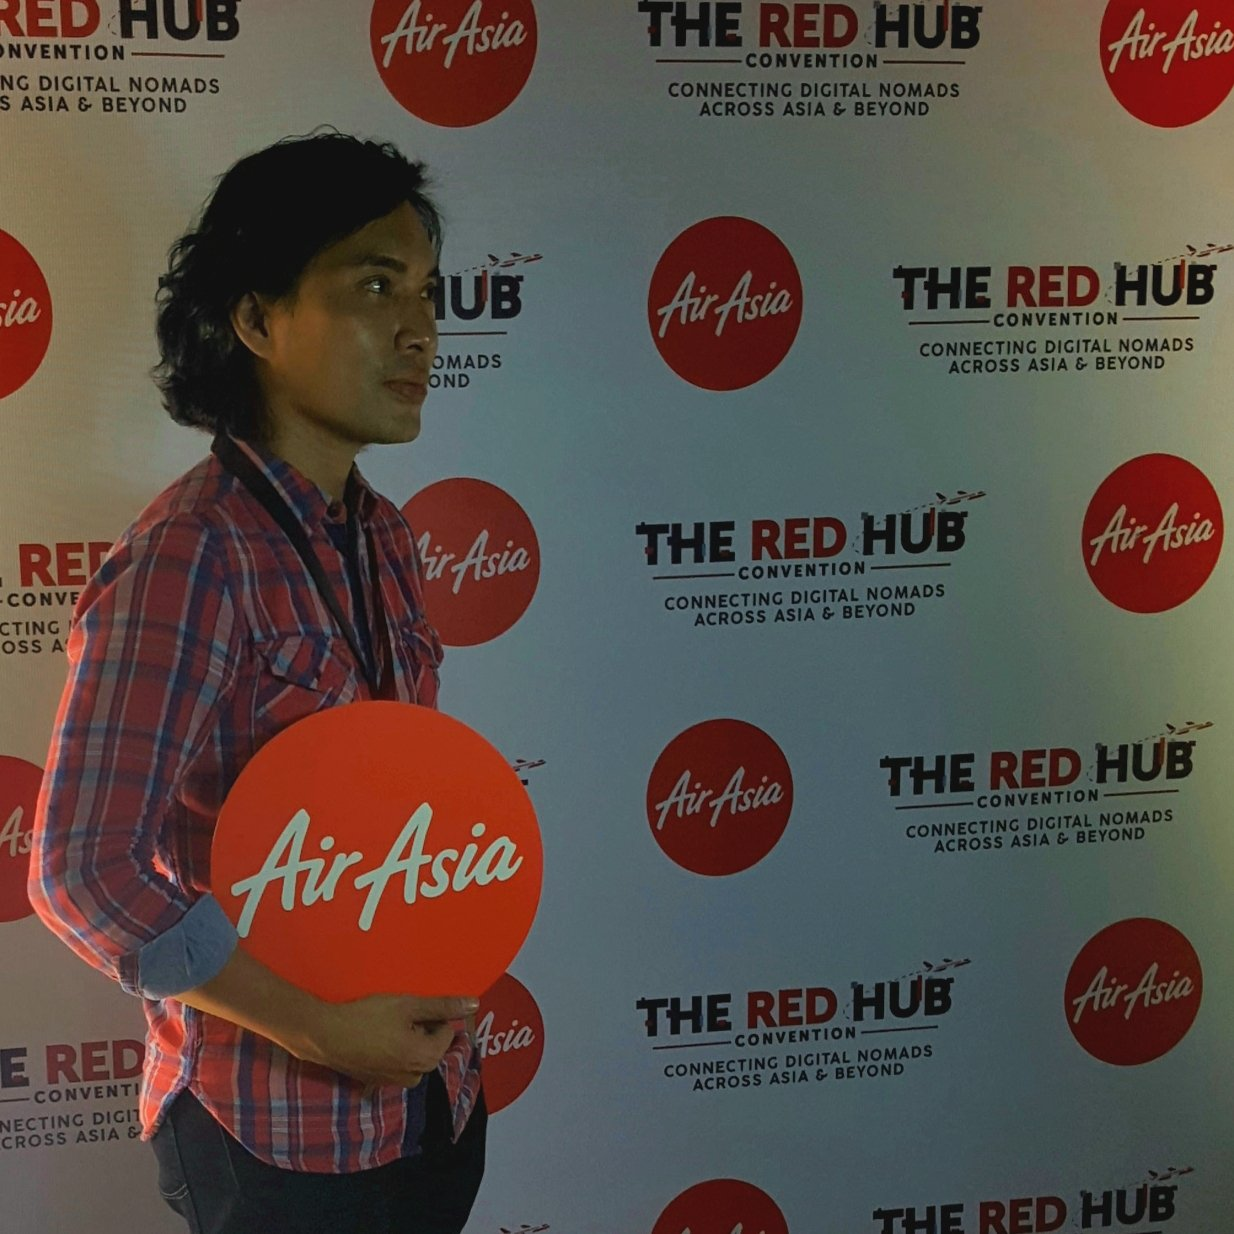 Me attending Air Asia's The Red Hub Convention at The Axon, Green Sun, Makati City, Philippines